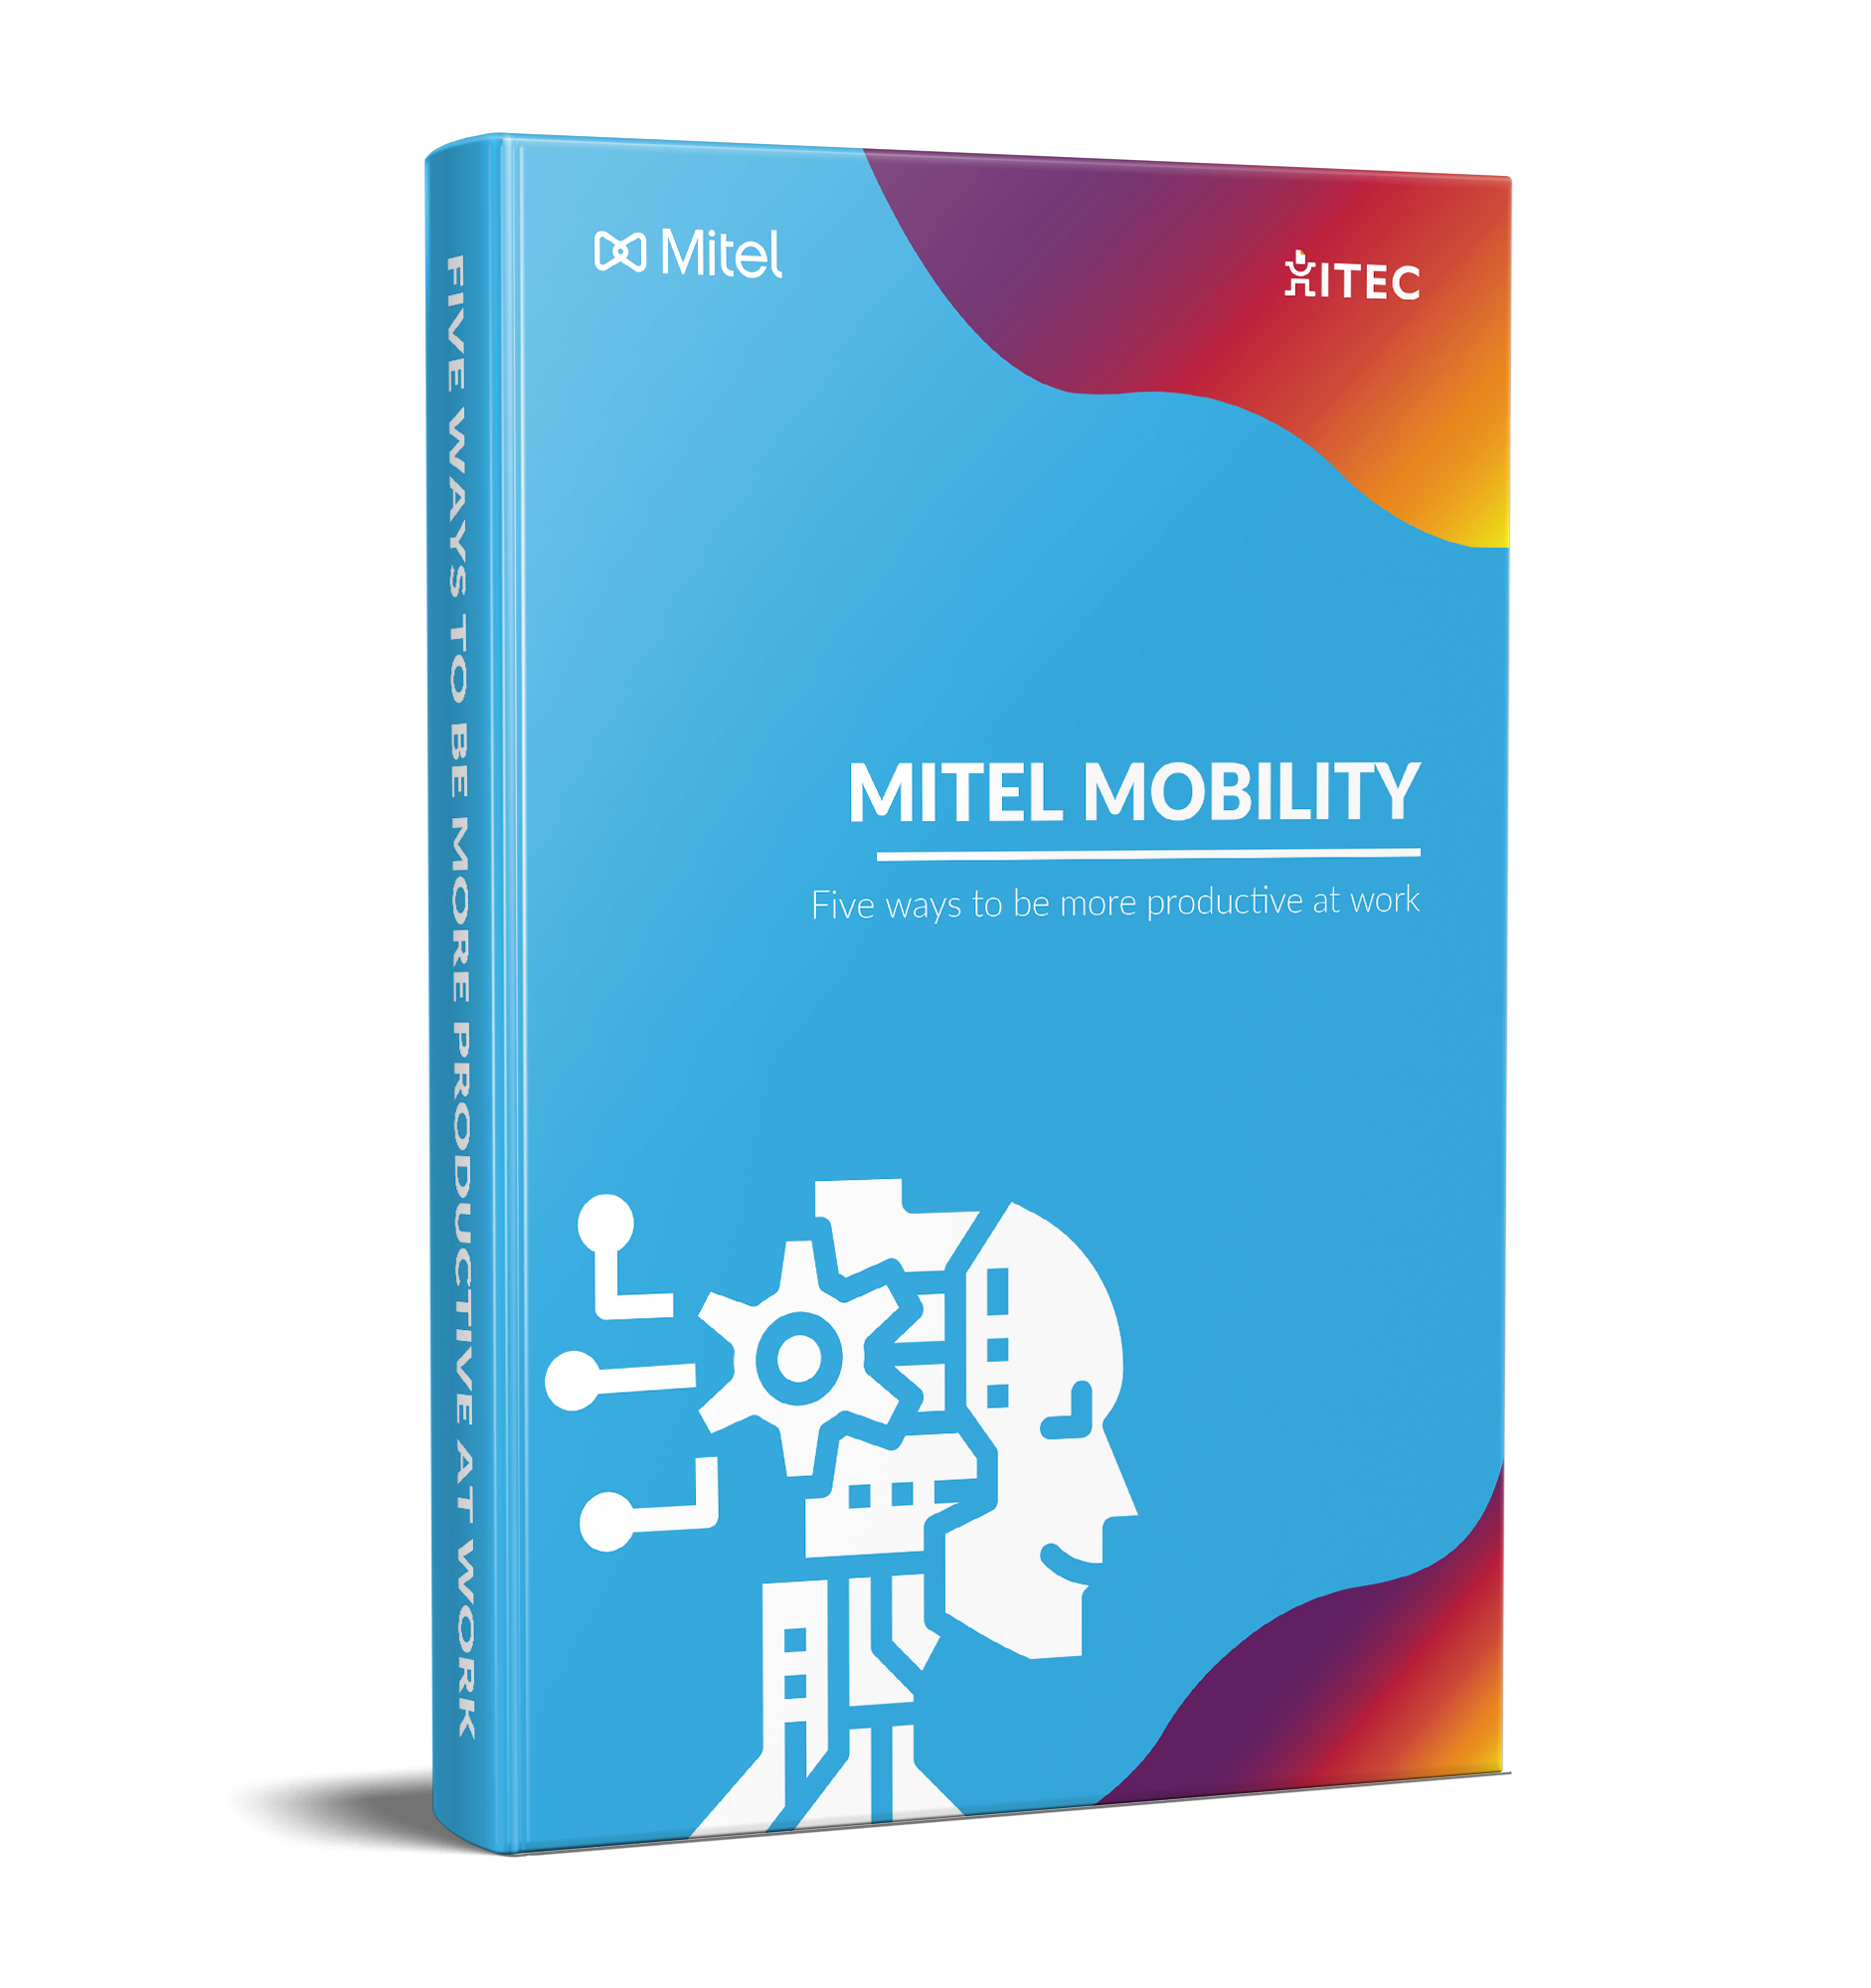 Mitel-Five-ways-to-be-more-productive-at-work